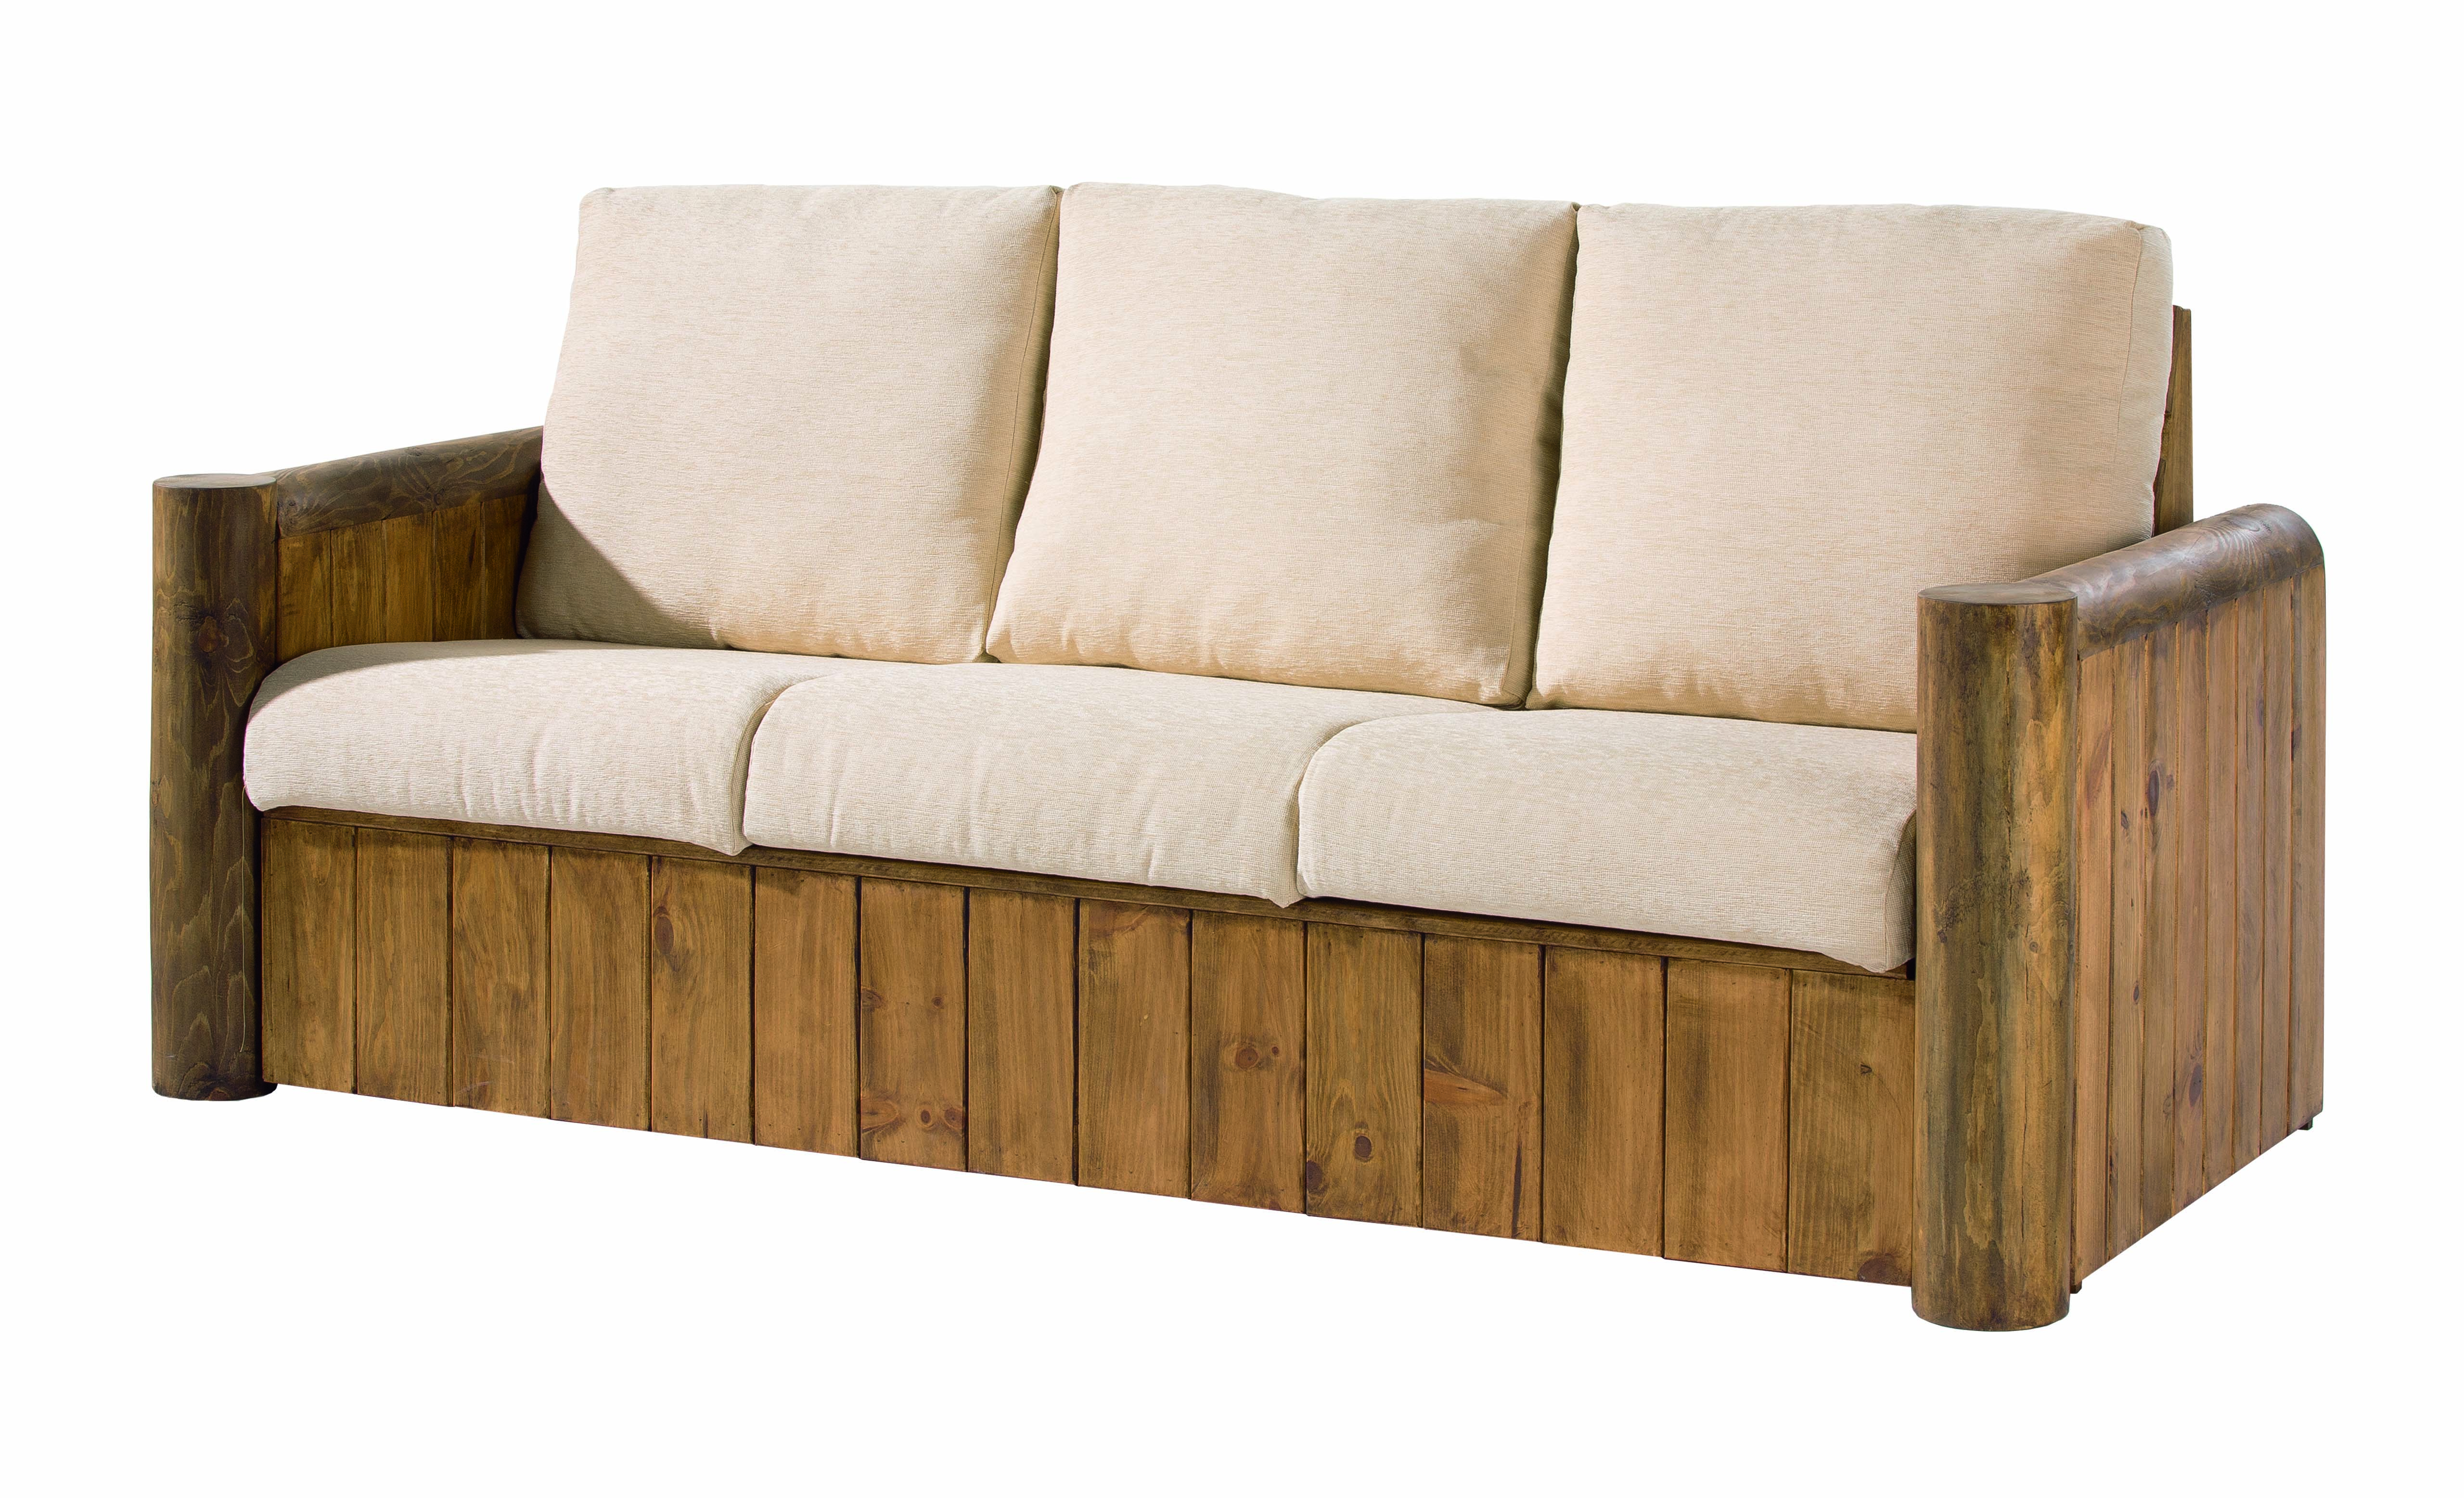 spanish sofa brand die collection bed wooden furniture from spain